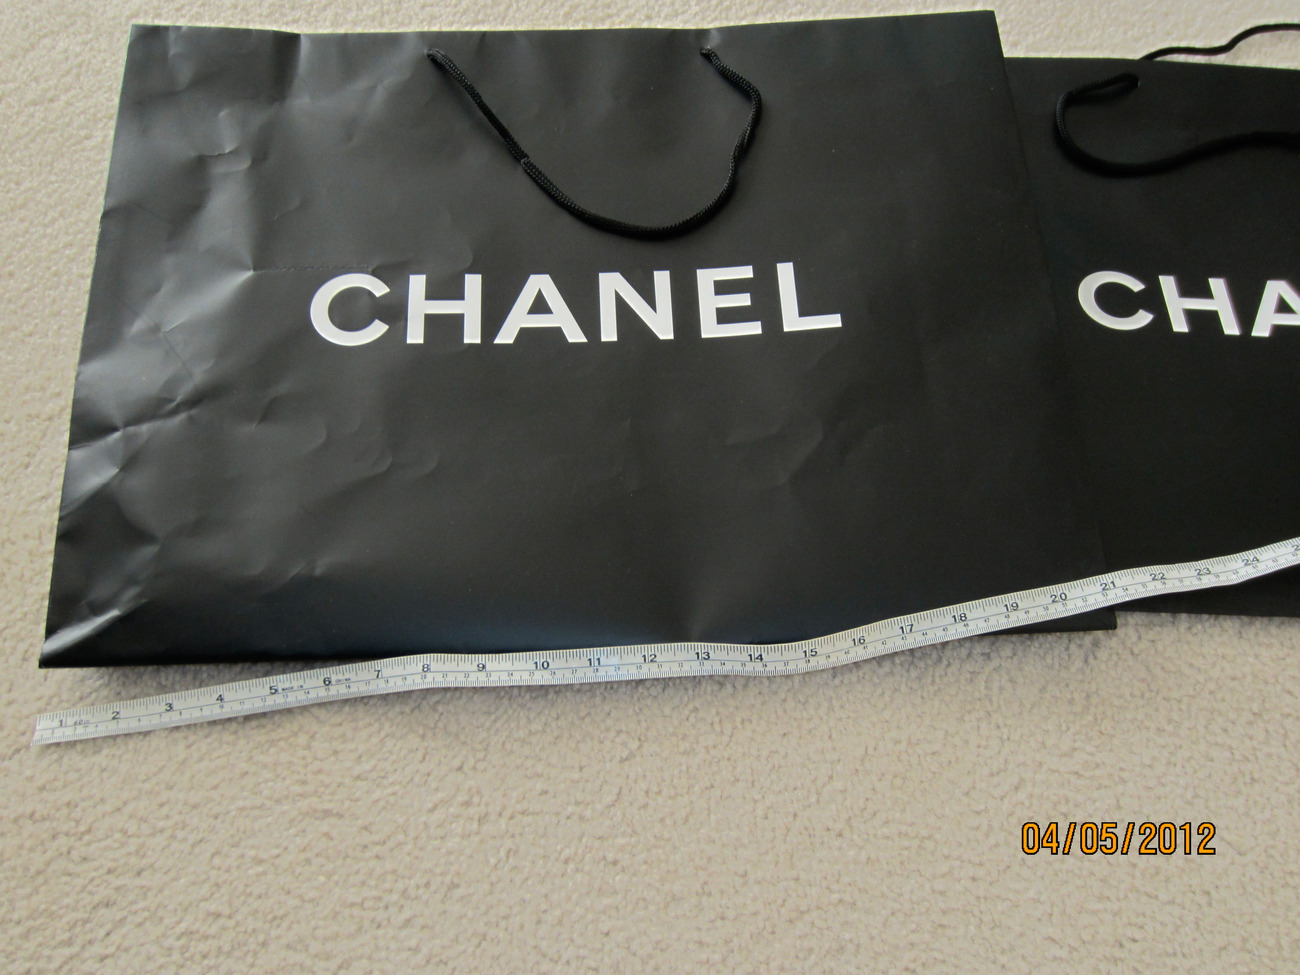 Chanel Shopping Bags Large 2